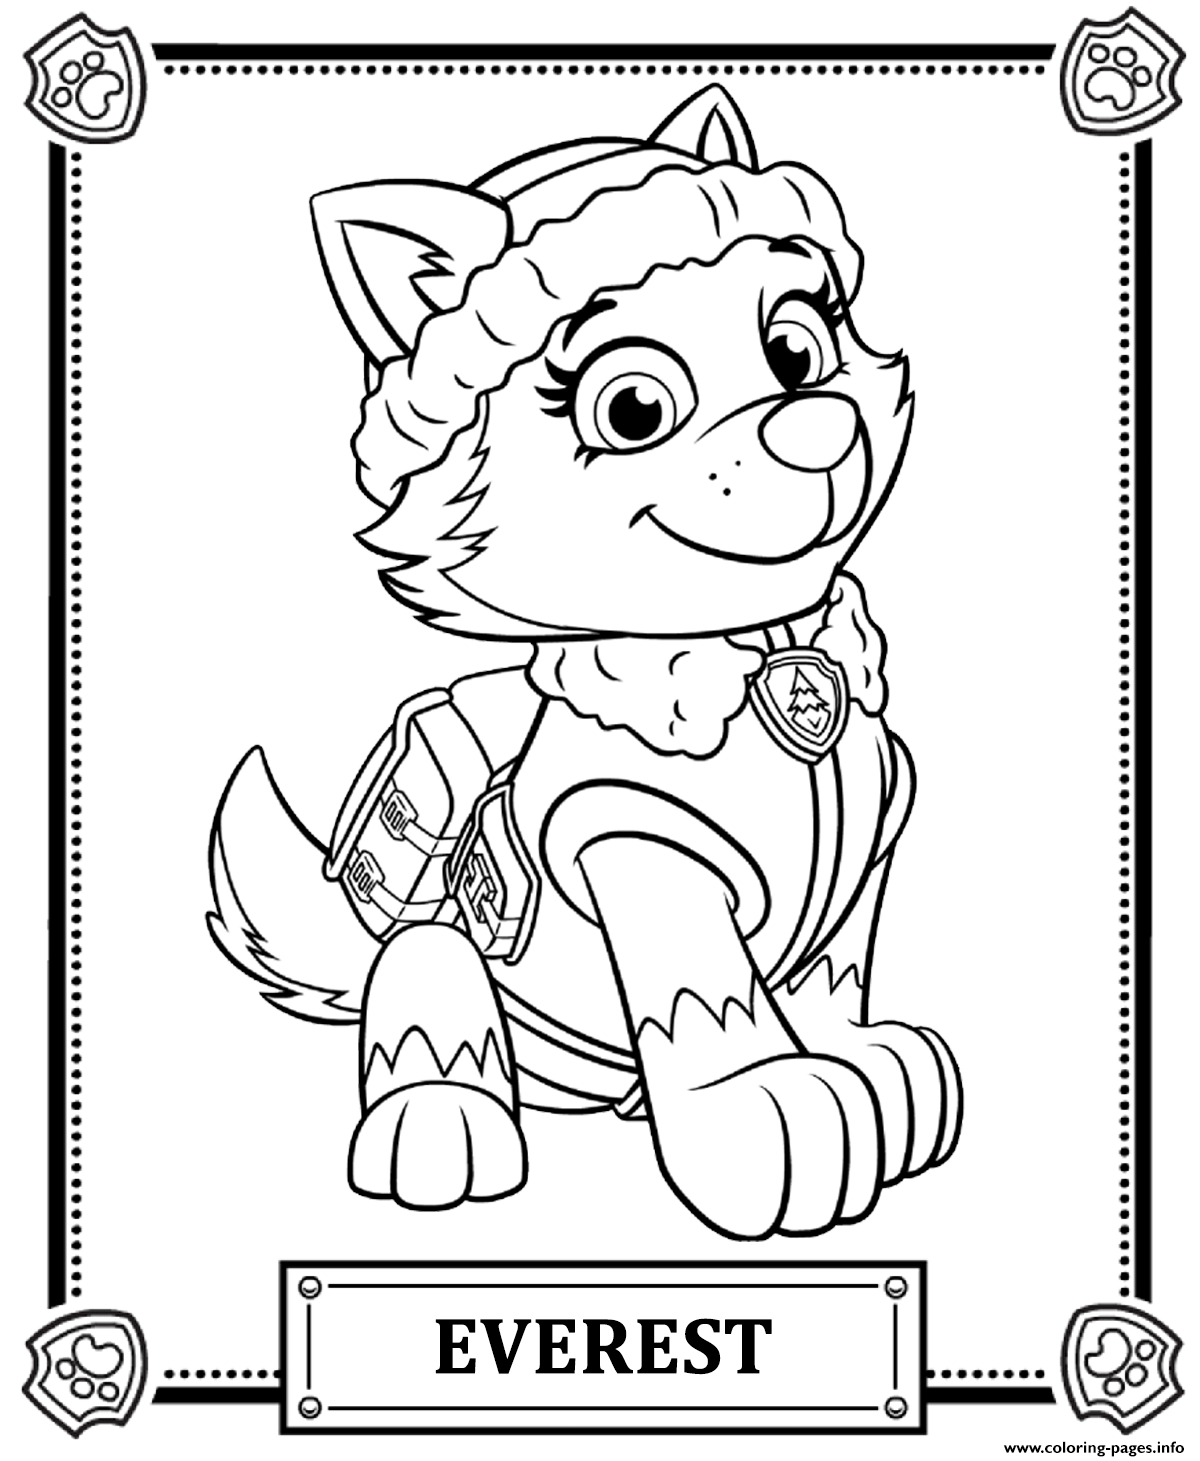 Print paw patrol everest coloring pages Brandon's 3rd